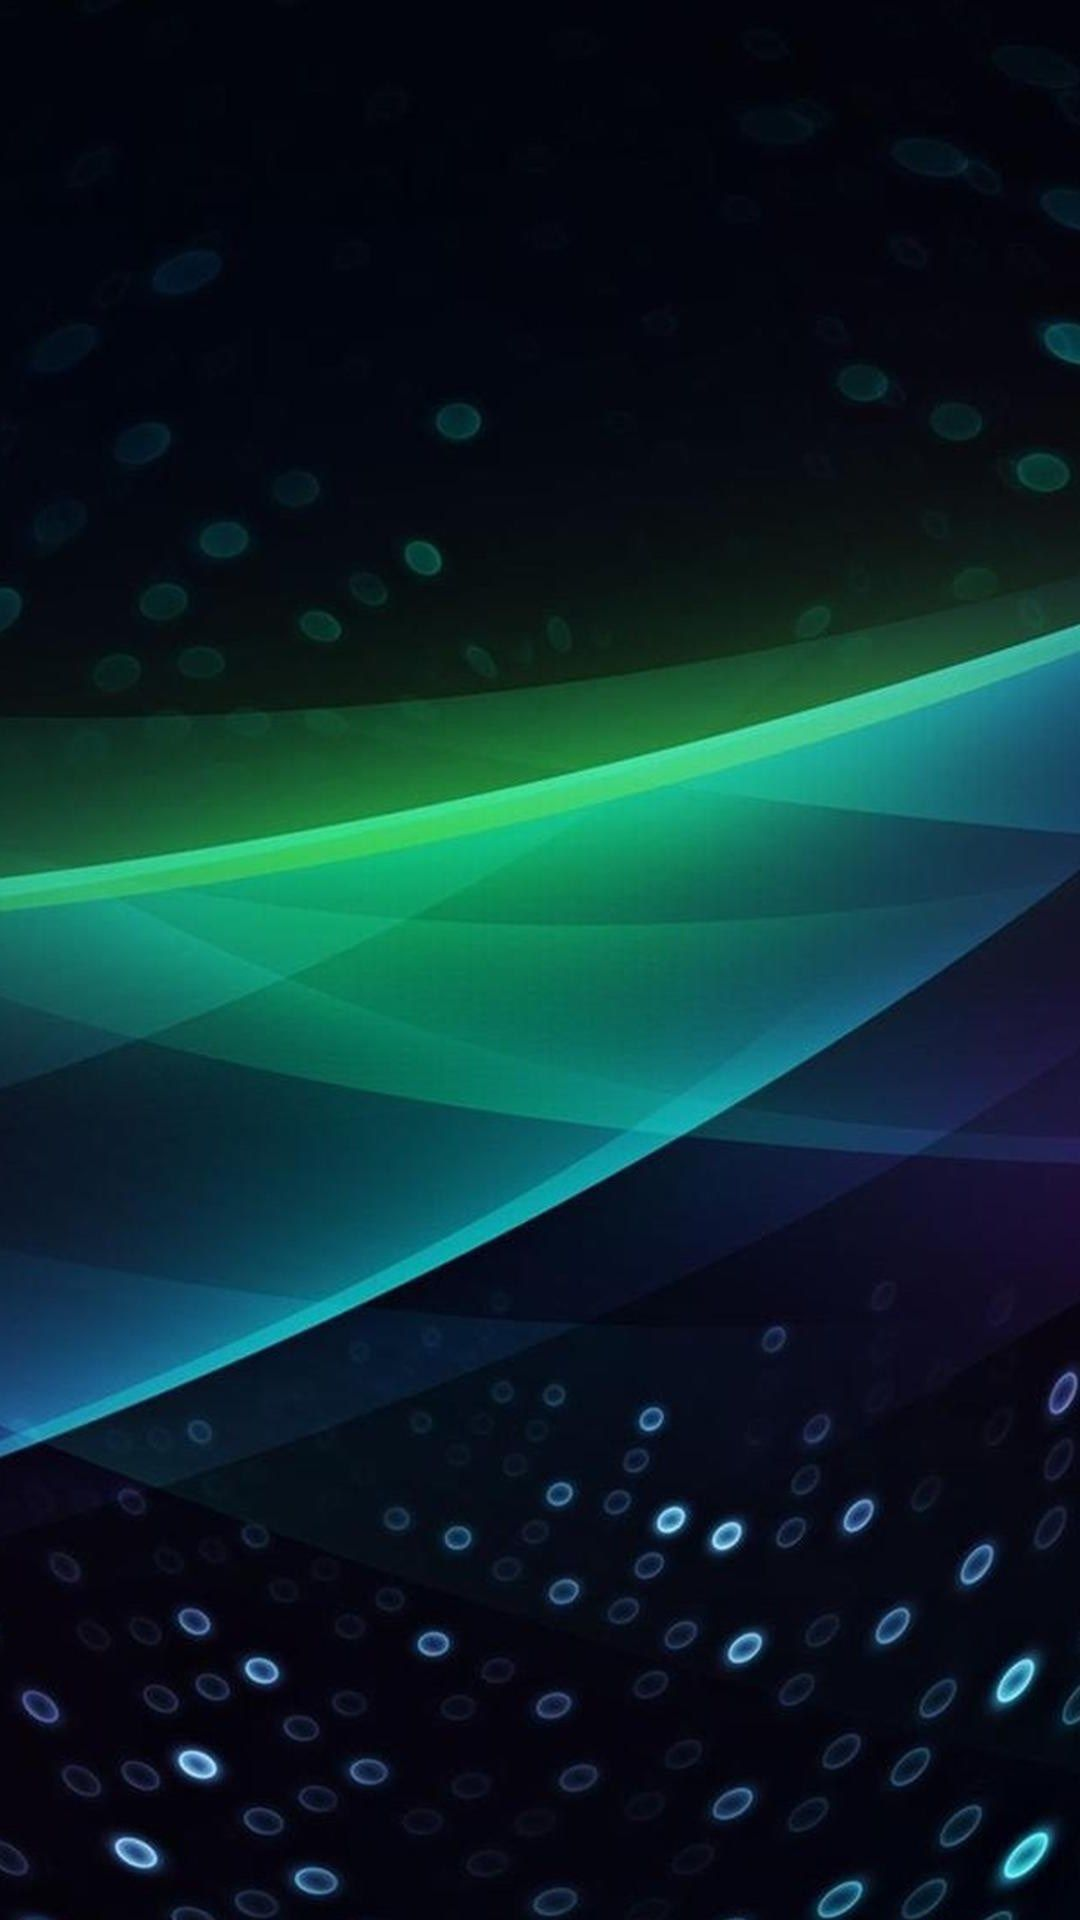 1080x1920 Abstract Android Phone Background Download - Hd Abstract ...